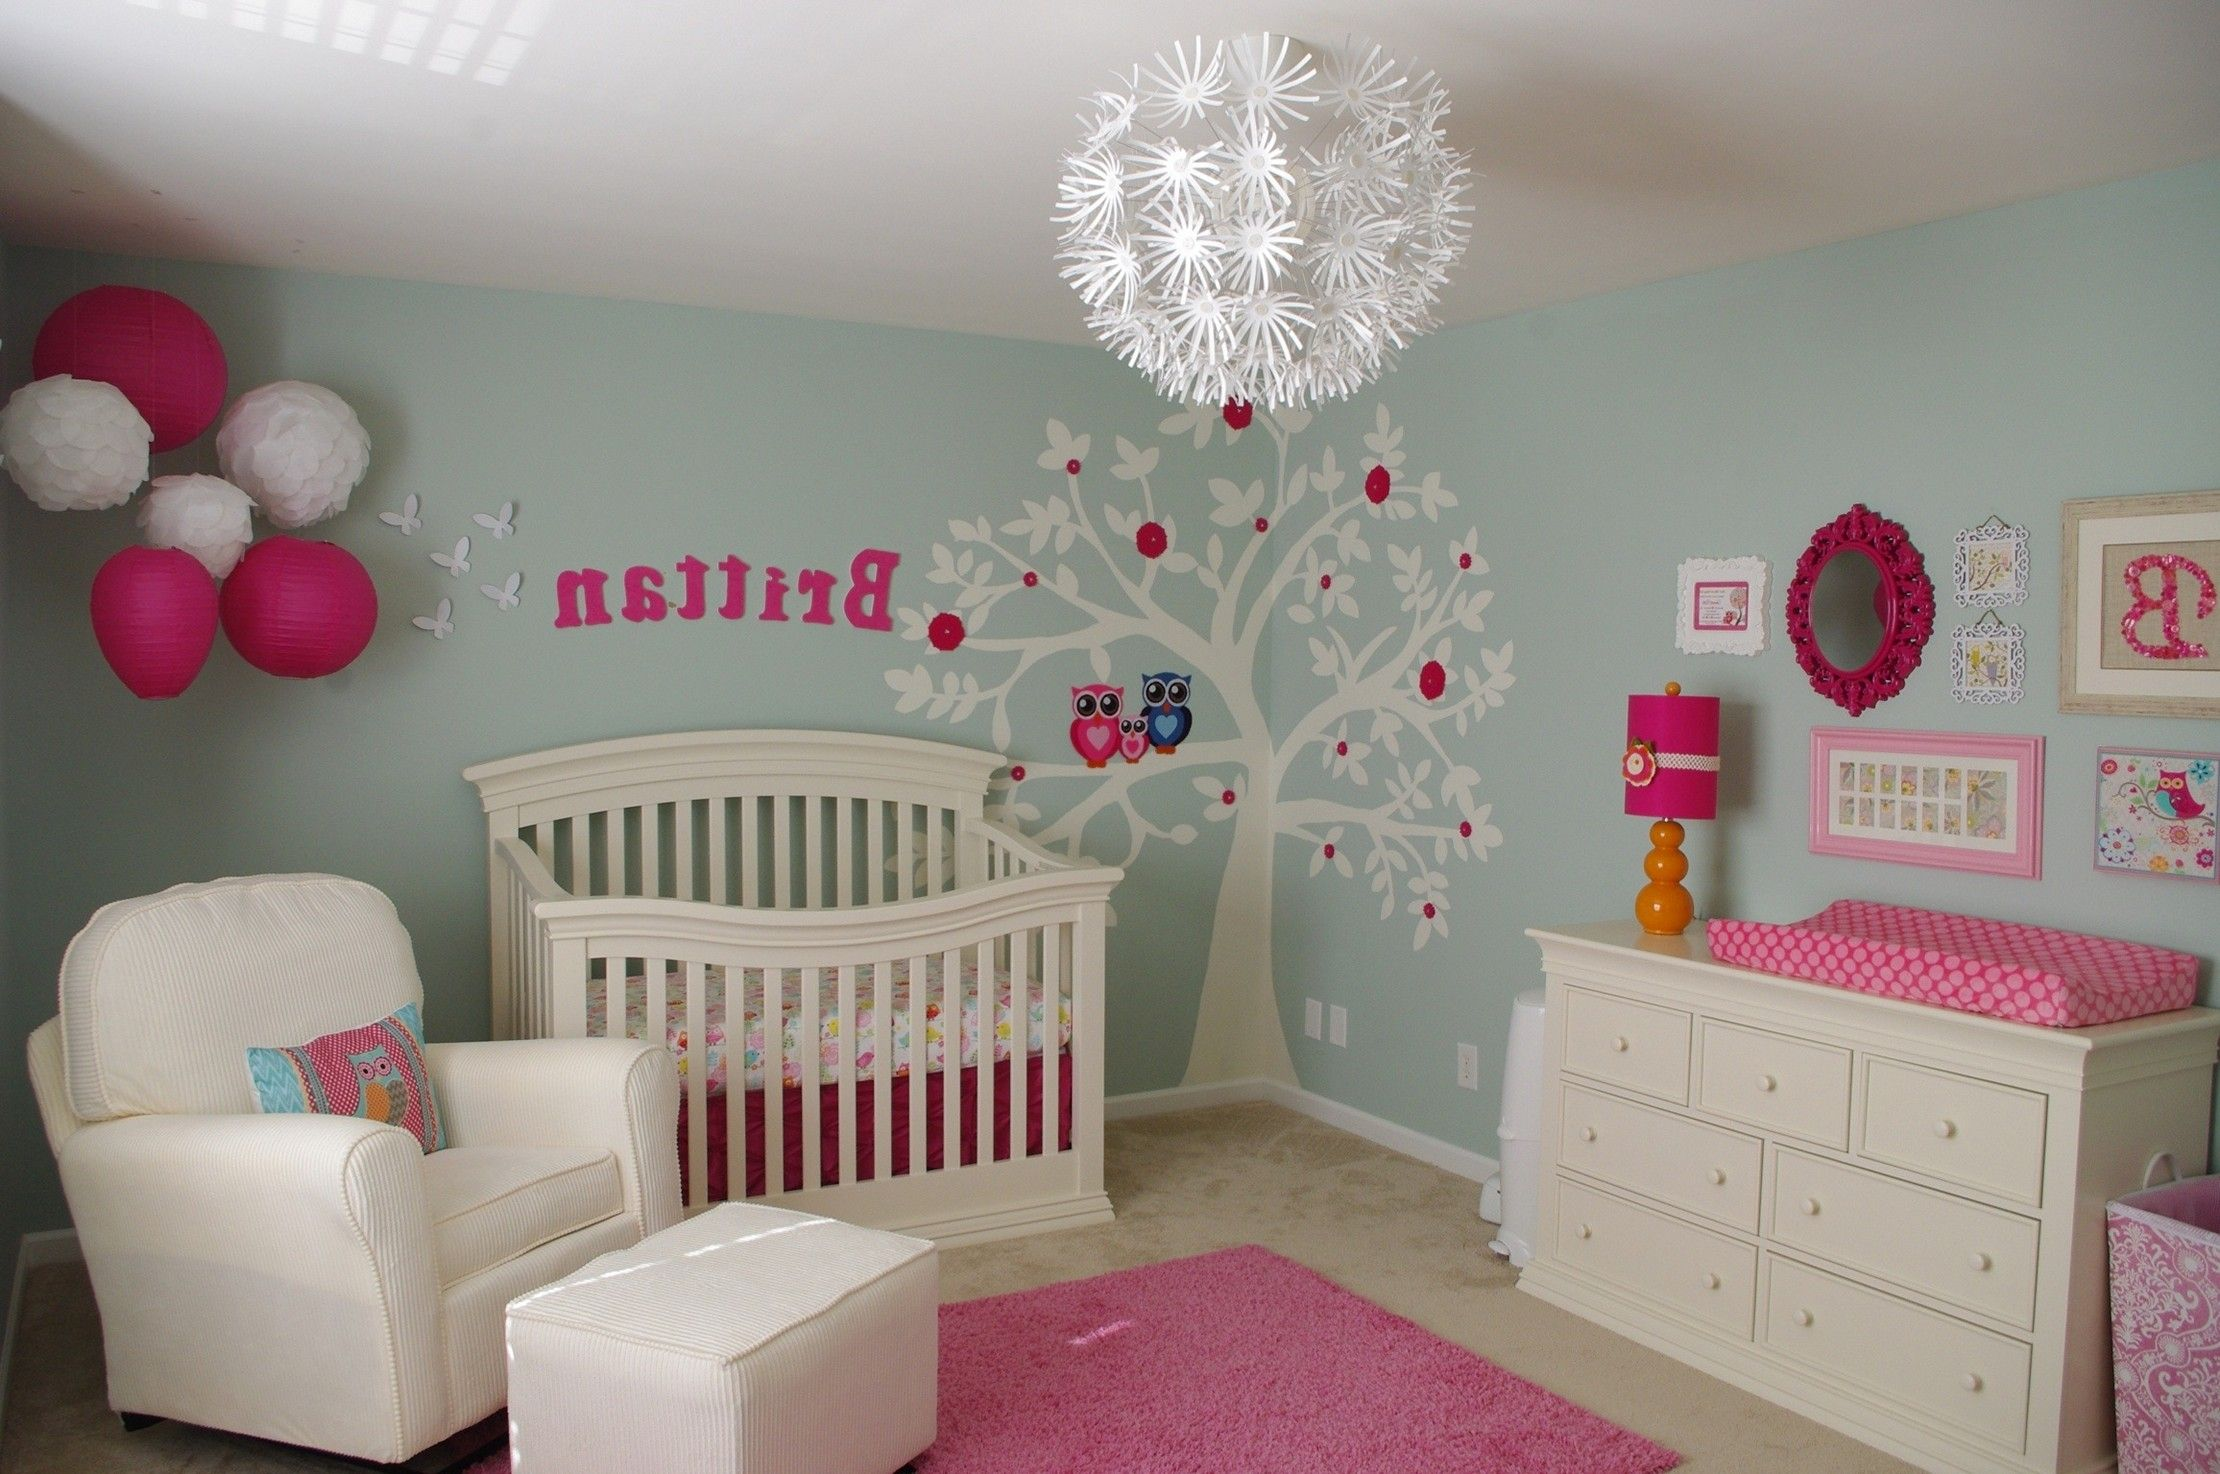 20 Outstanding Baby Room Ideas For Perfect Nursery Diy Baby Room